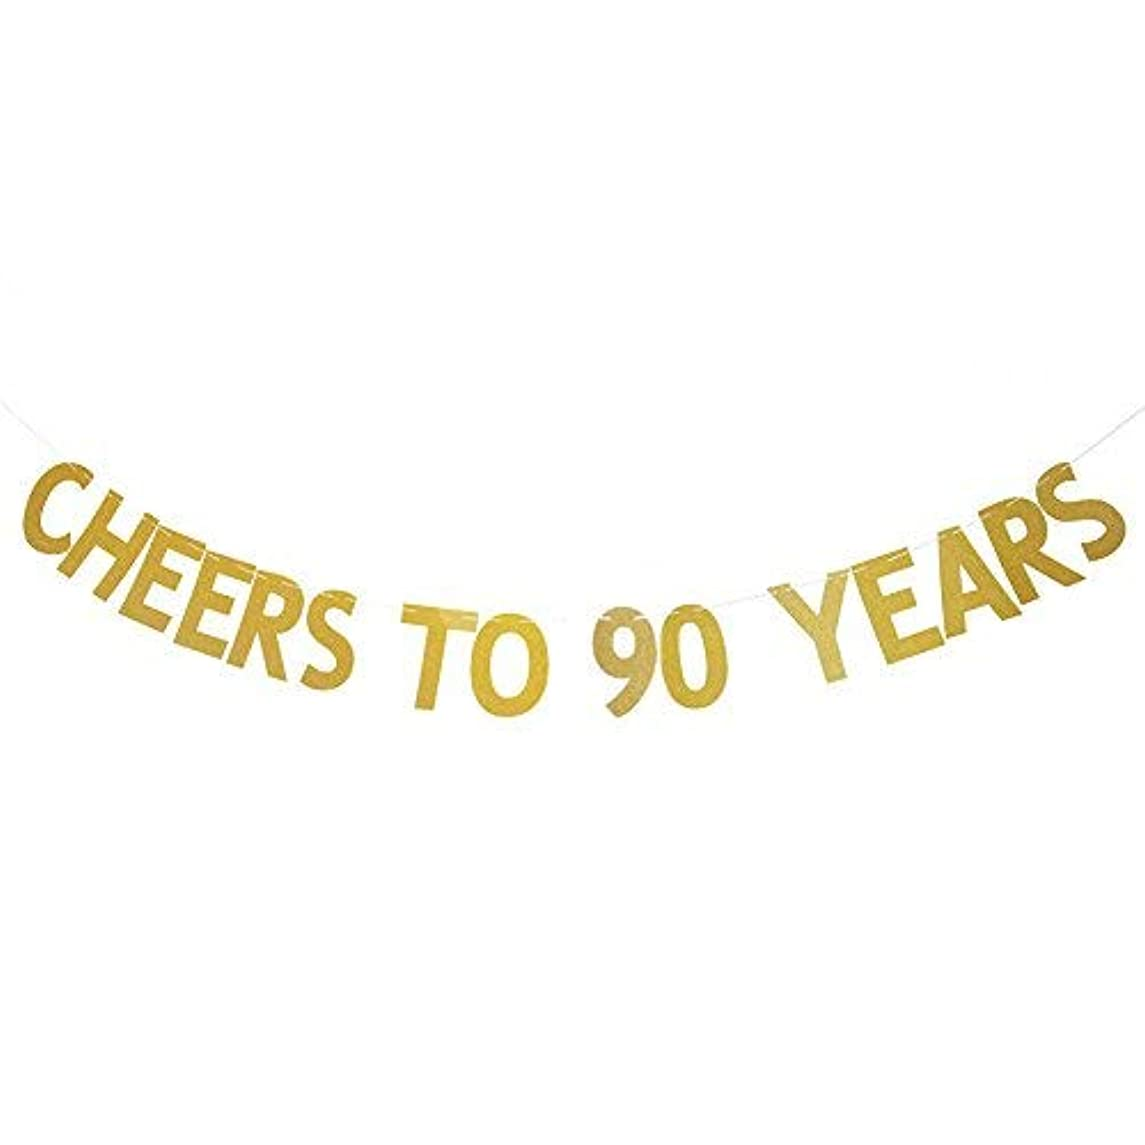 Gold Glitter Cheers to 90 Years Banner 90th Birthday Anniversary Party Photo Prop Garlands Bunting Decor (90)